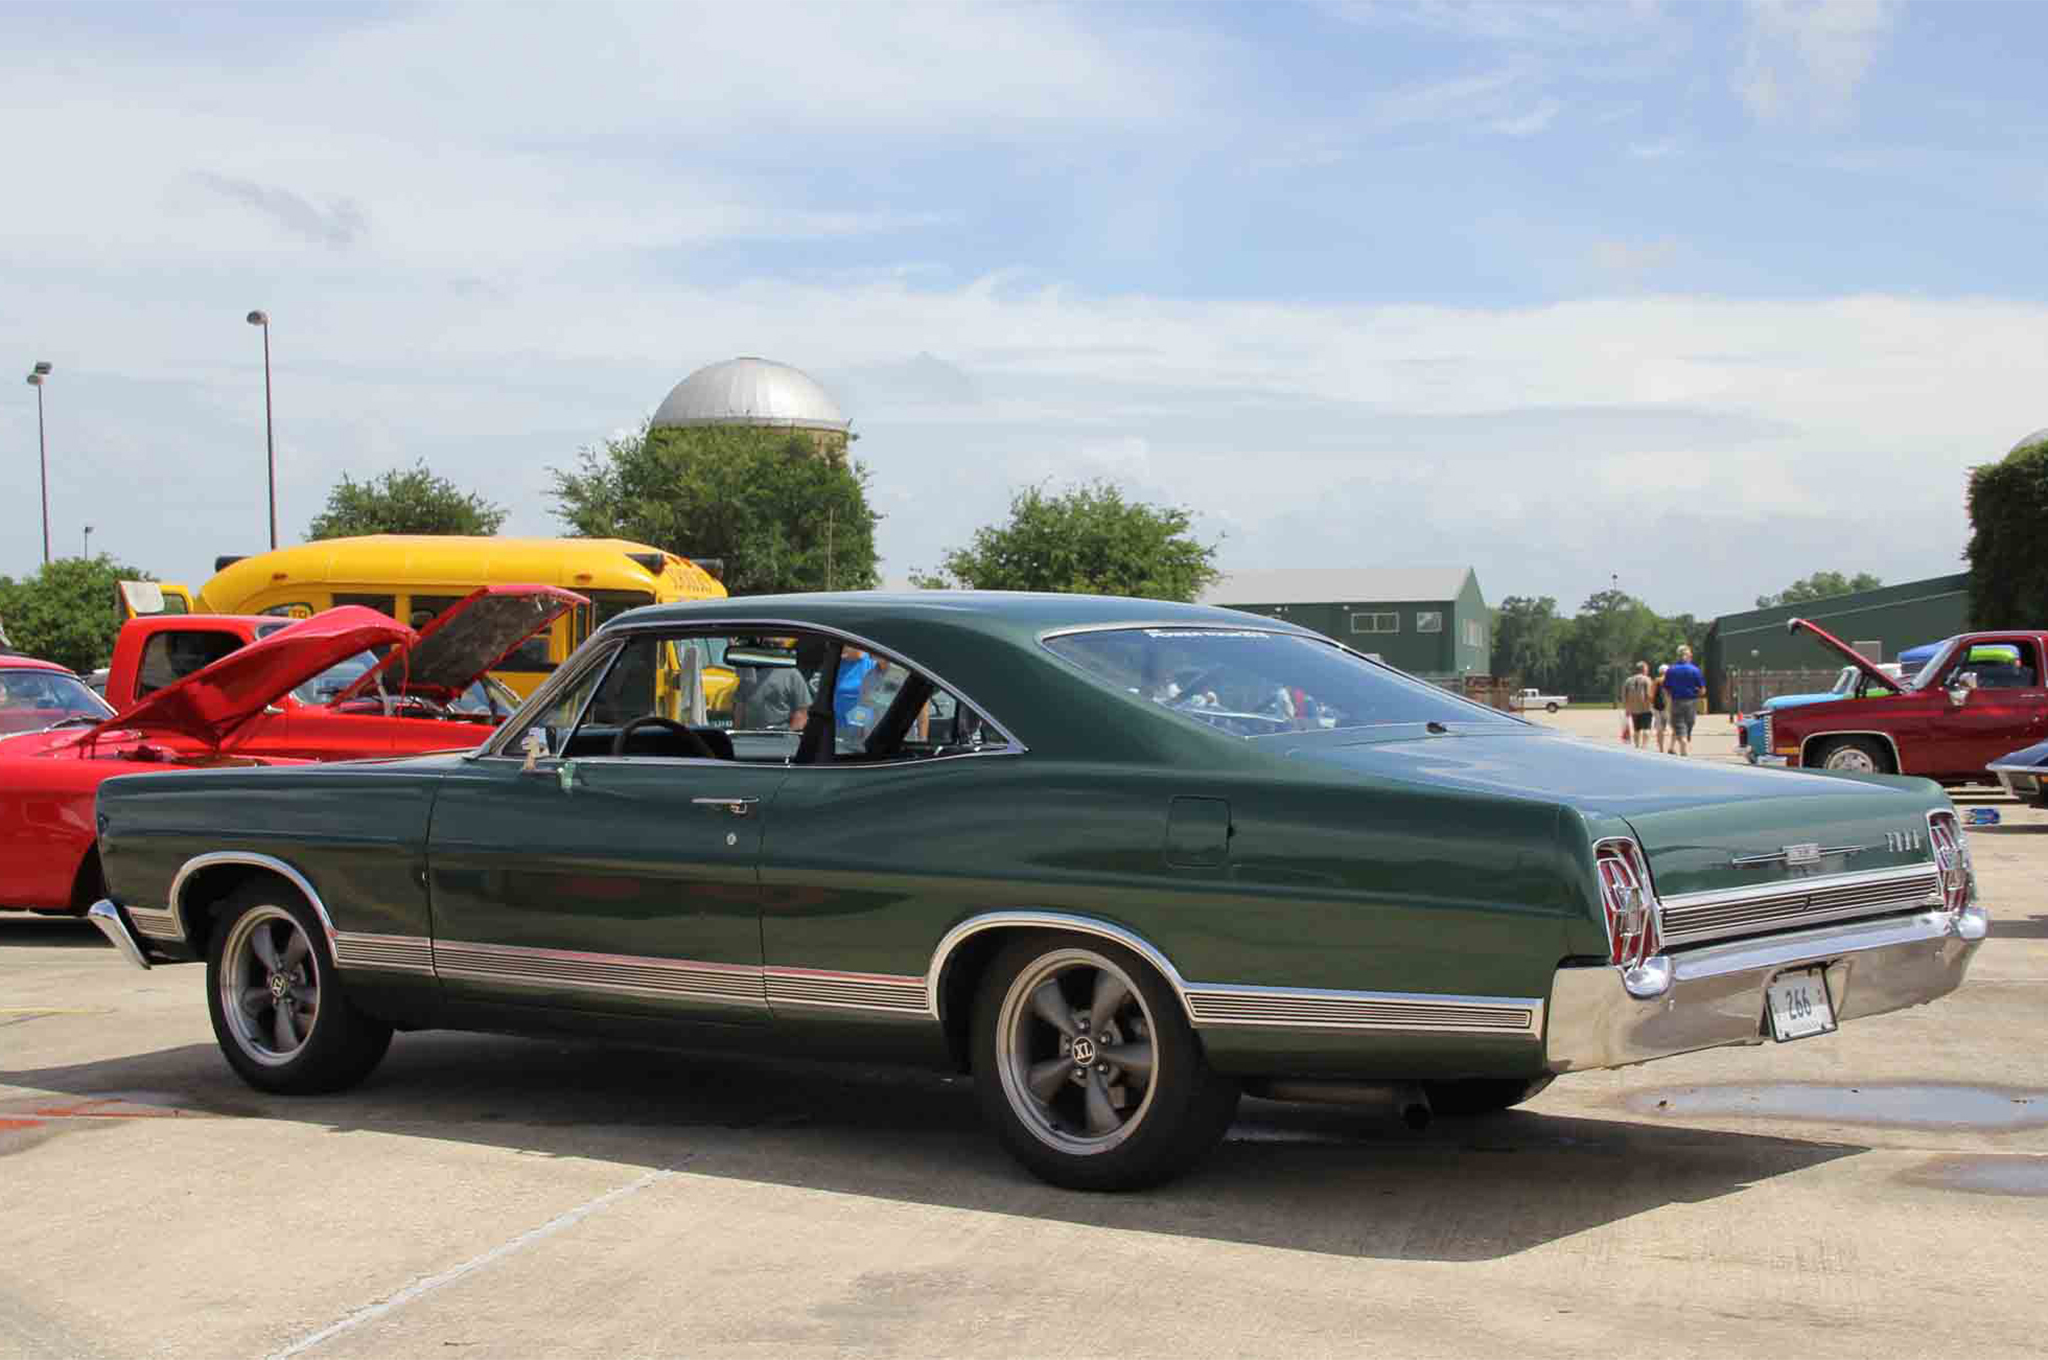 Wiring Diagram For 67 Ford Galaxie 500 Libraries 1970 Ltd Power Tour 2015 Big Mod Motors And 20 Years Build Time Hotpower